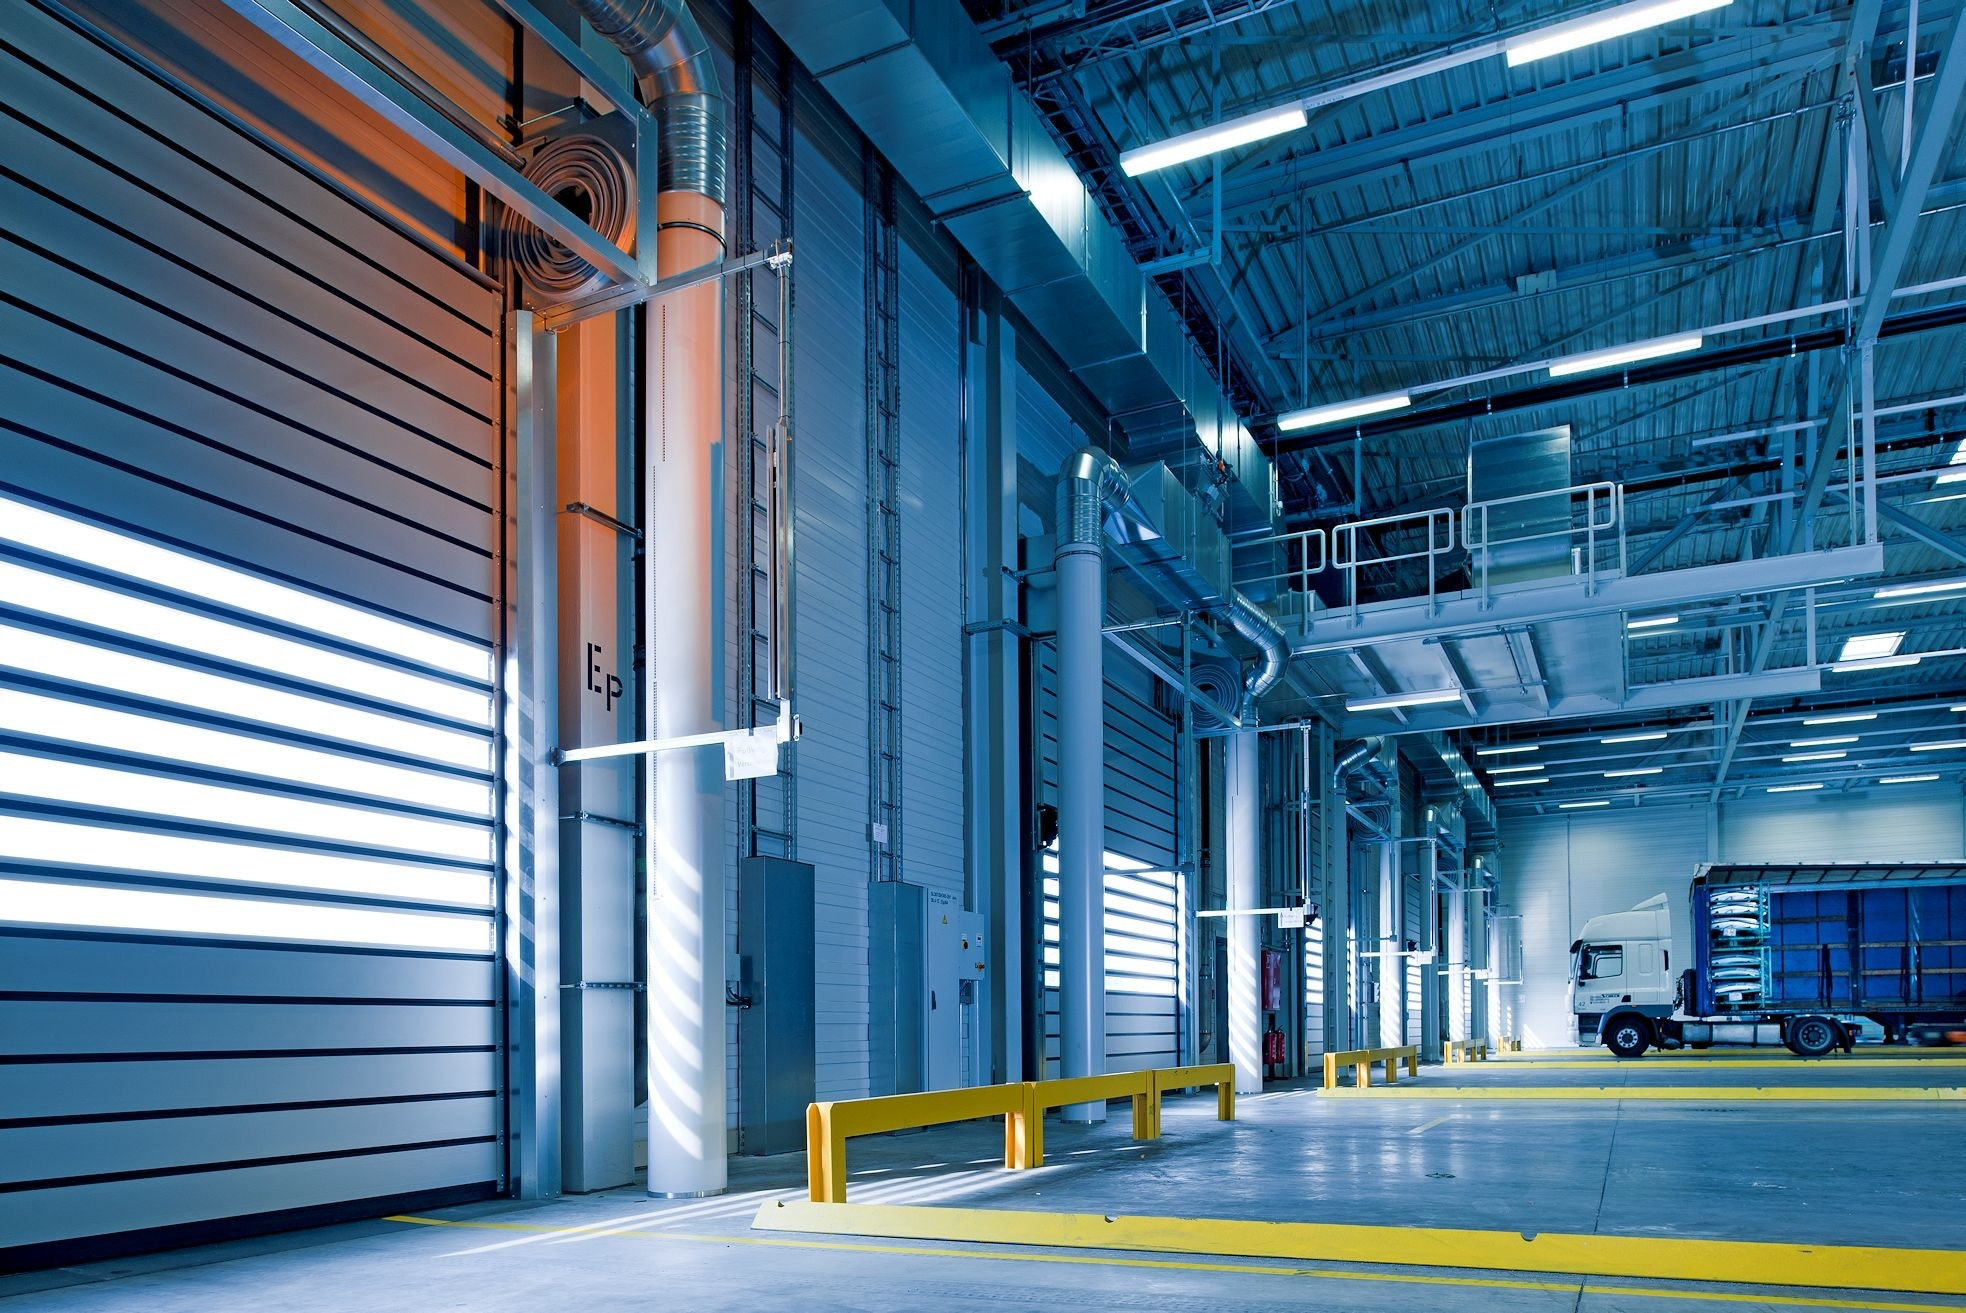 The interior of a warehouse loading and unloading bay